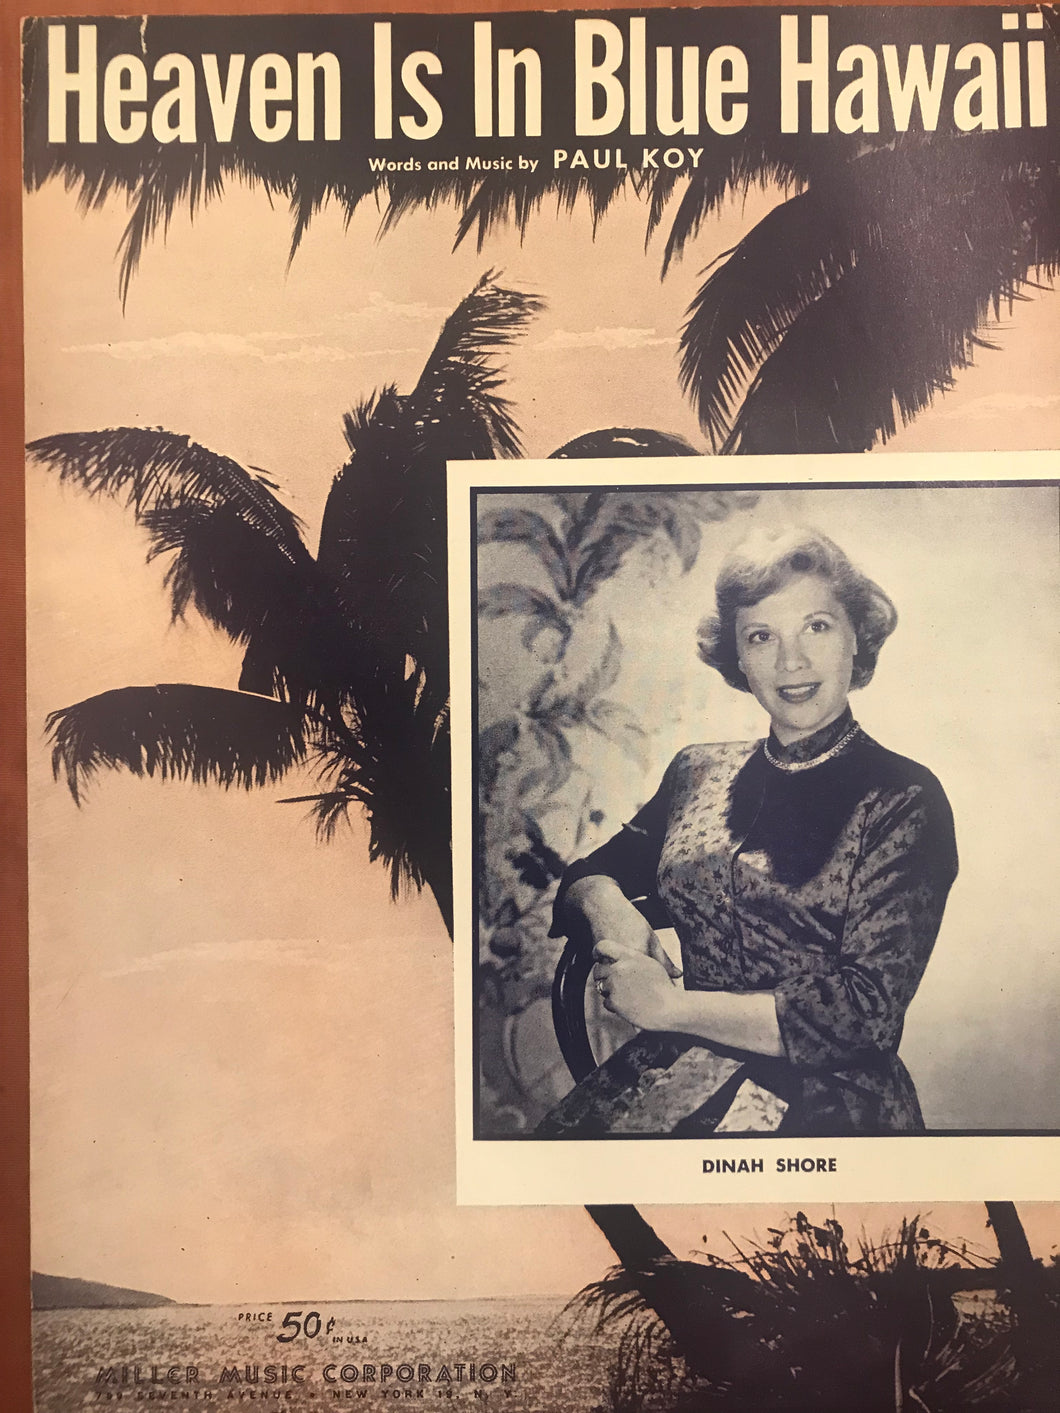 Hawaiian Sheet Music: 'Heaven Is In Blue Hawaii'